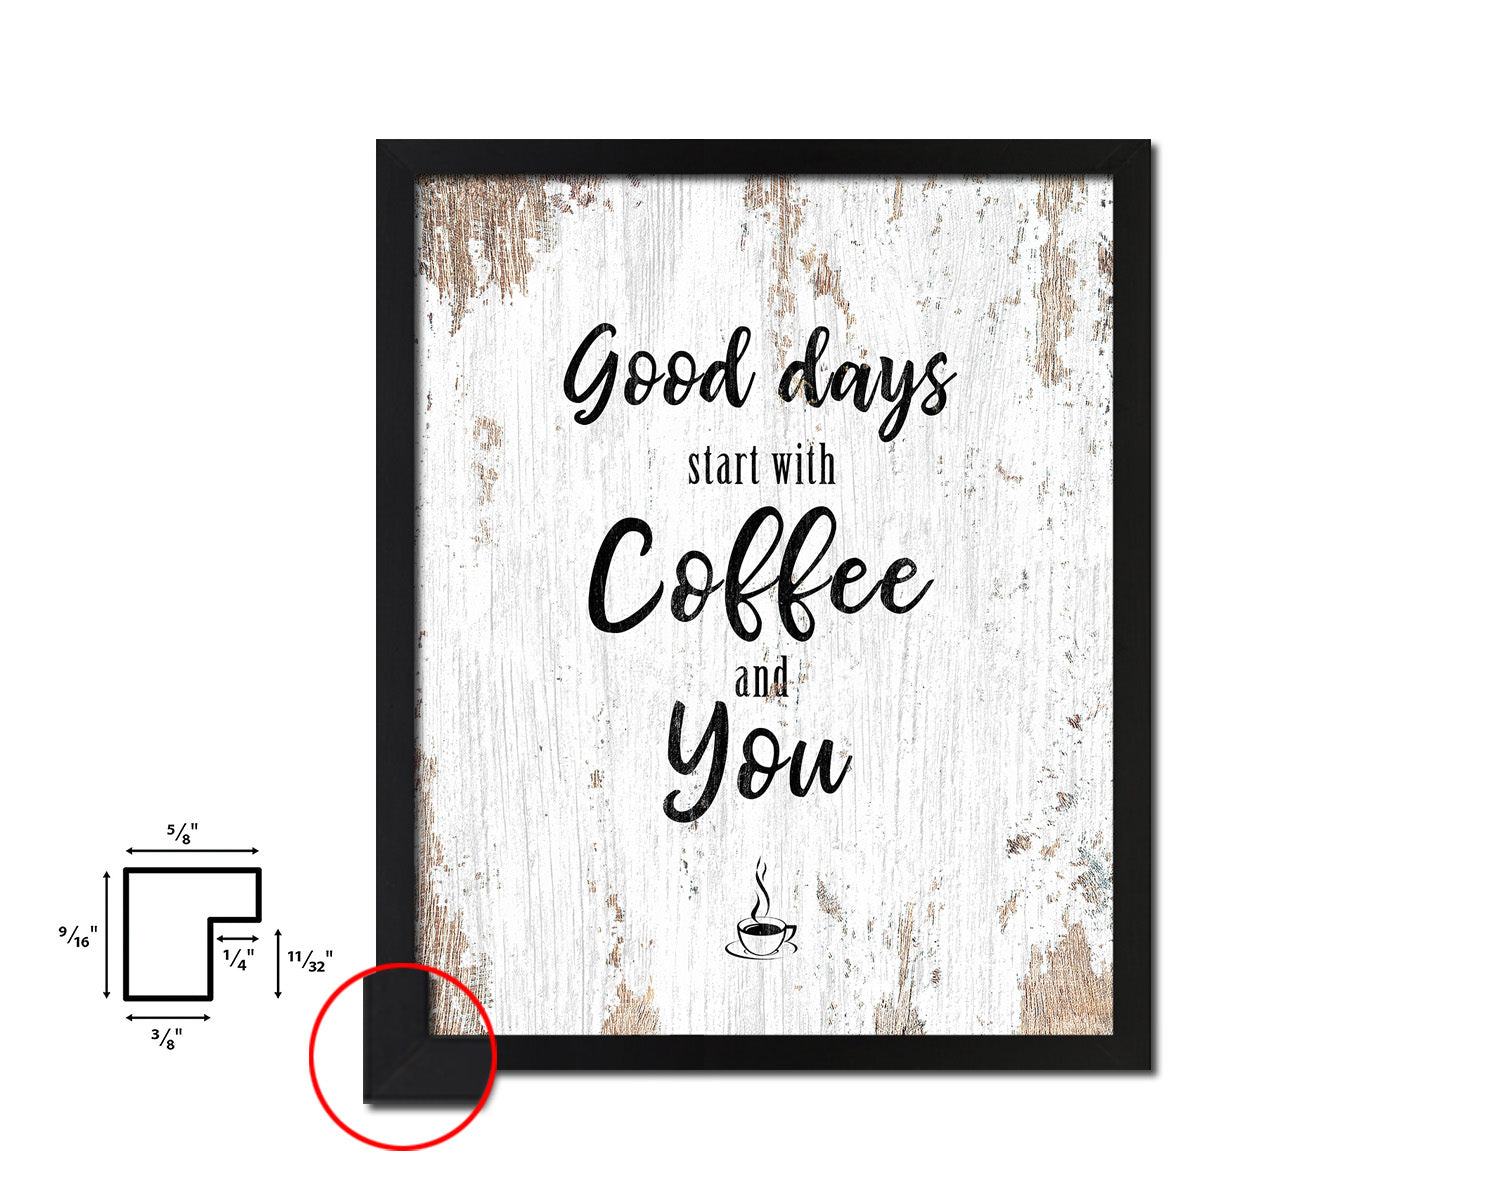 Good ideas start with coffee and you Quote Framed Artwork Print Wall Decor Art Gifts